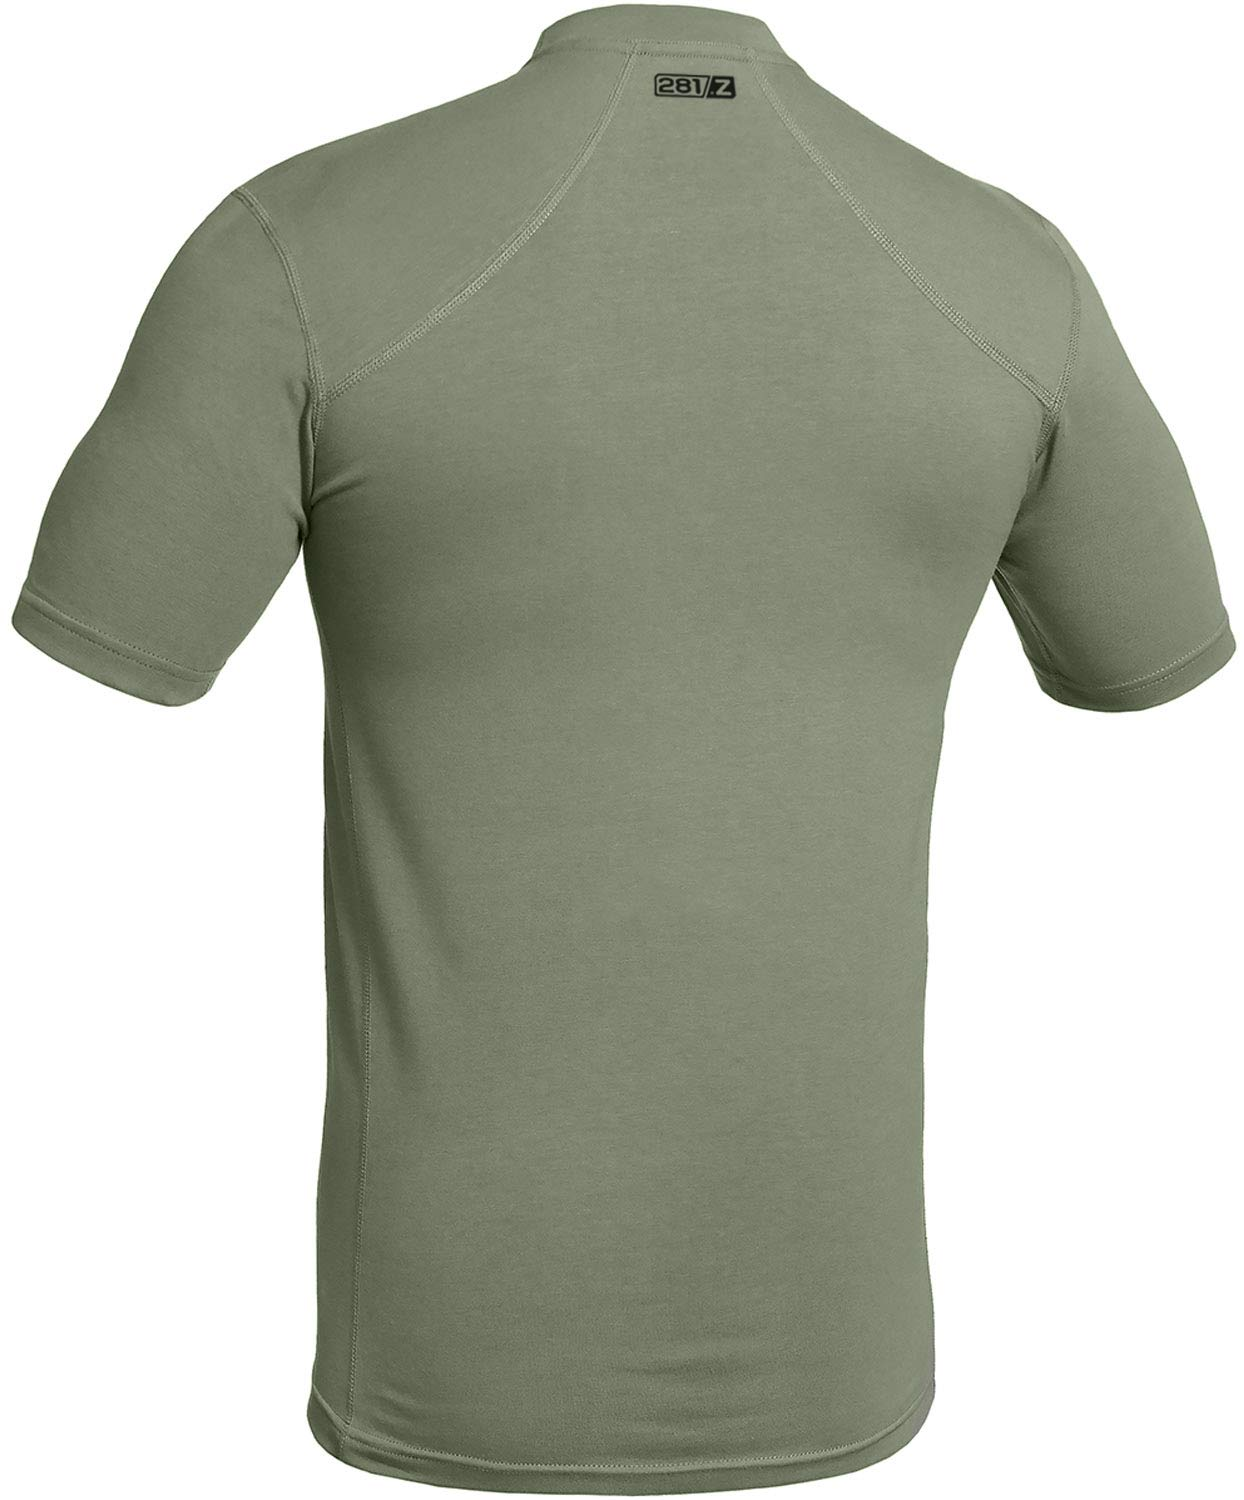 281Z Military Stretch Cotton Underwear T-Shirt - Tactical Hiking Outdoor - Punisher Combat Line (Olive Drab, X-Large) by 281Z (Image #2)